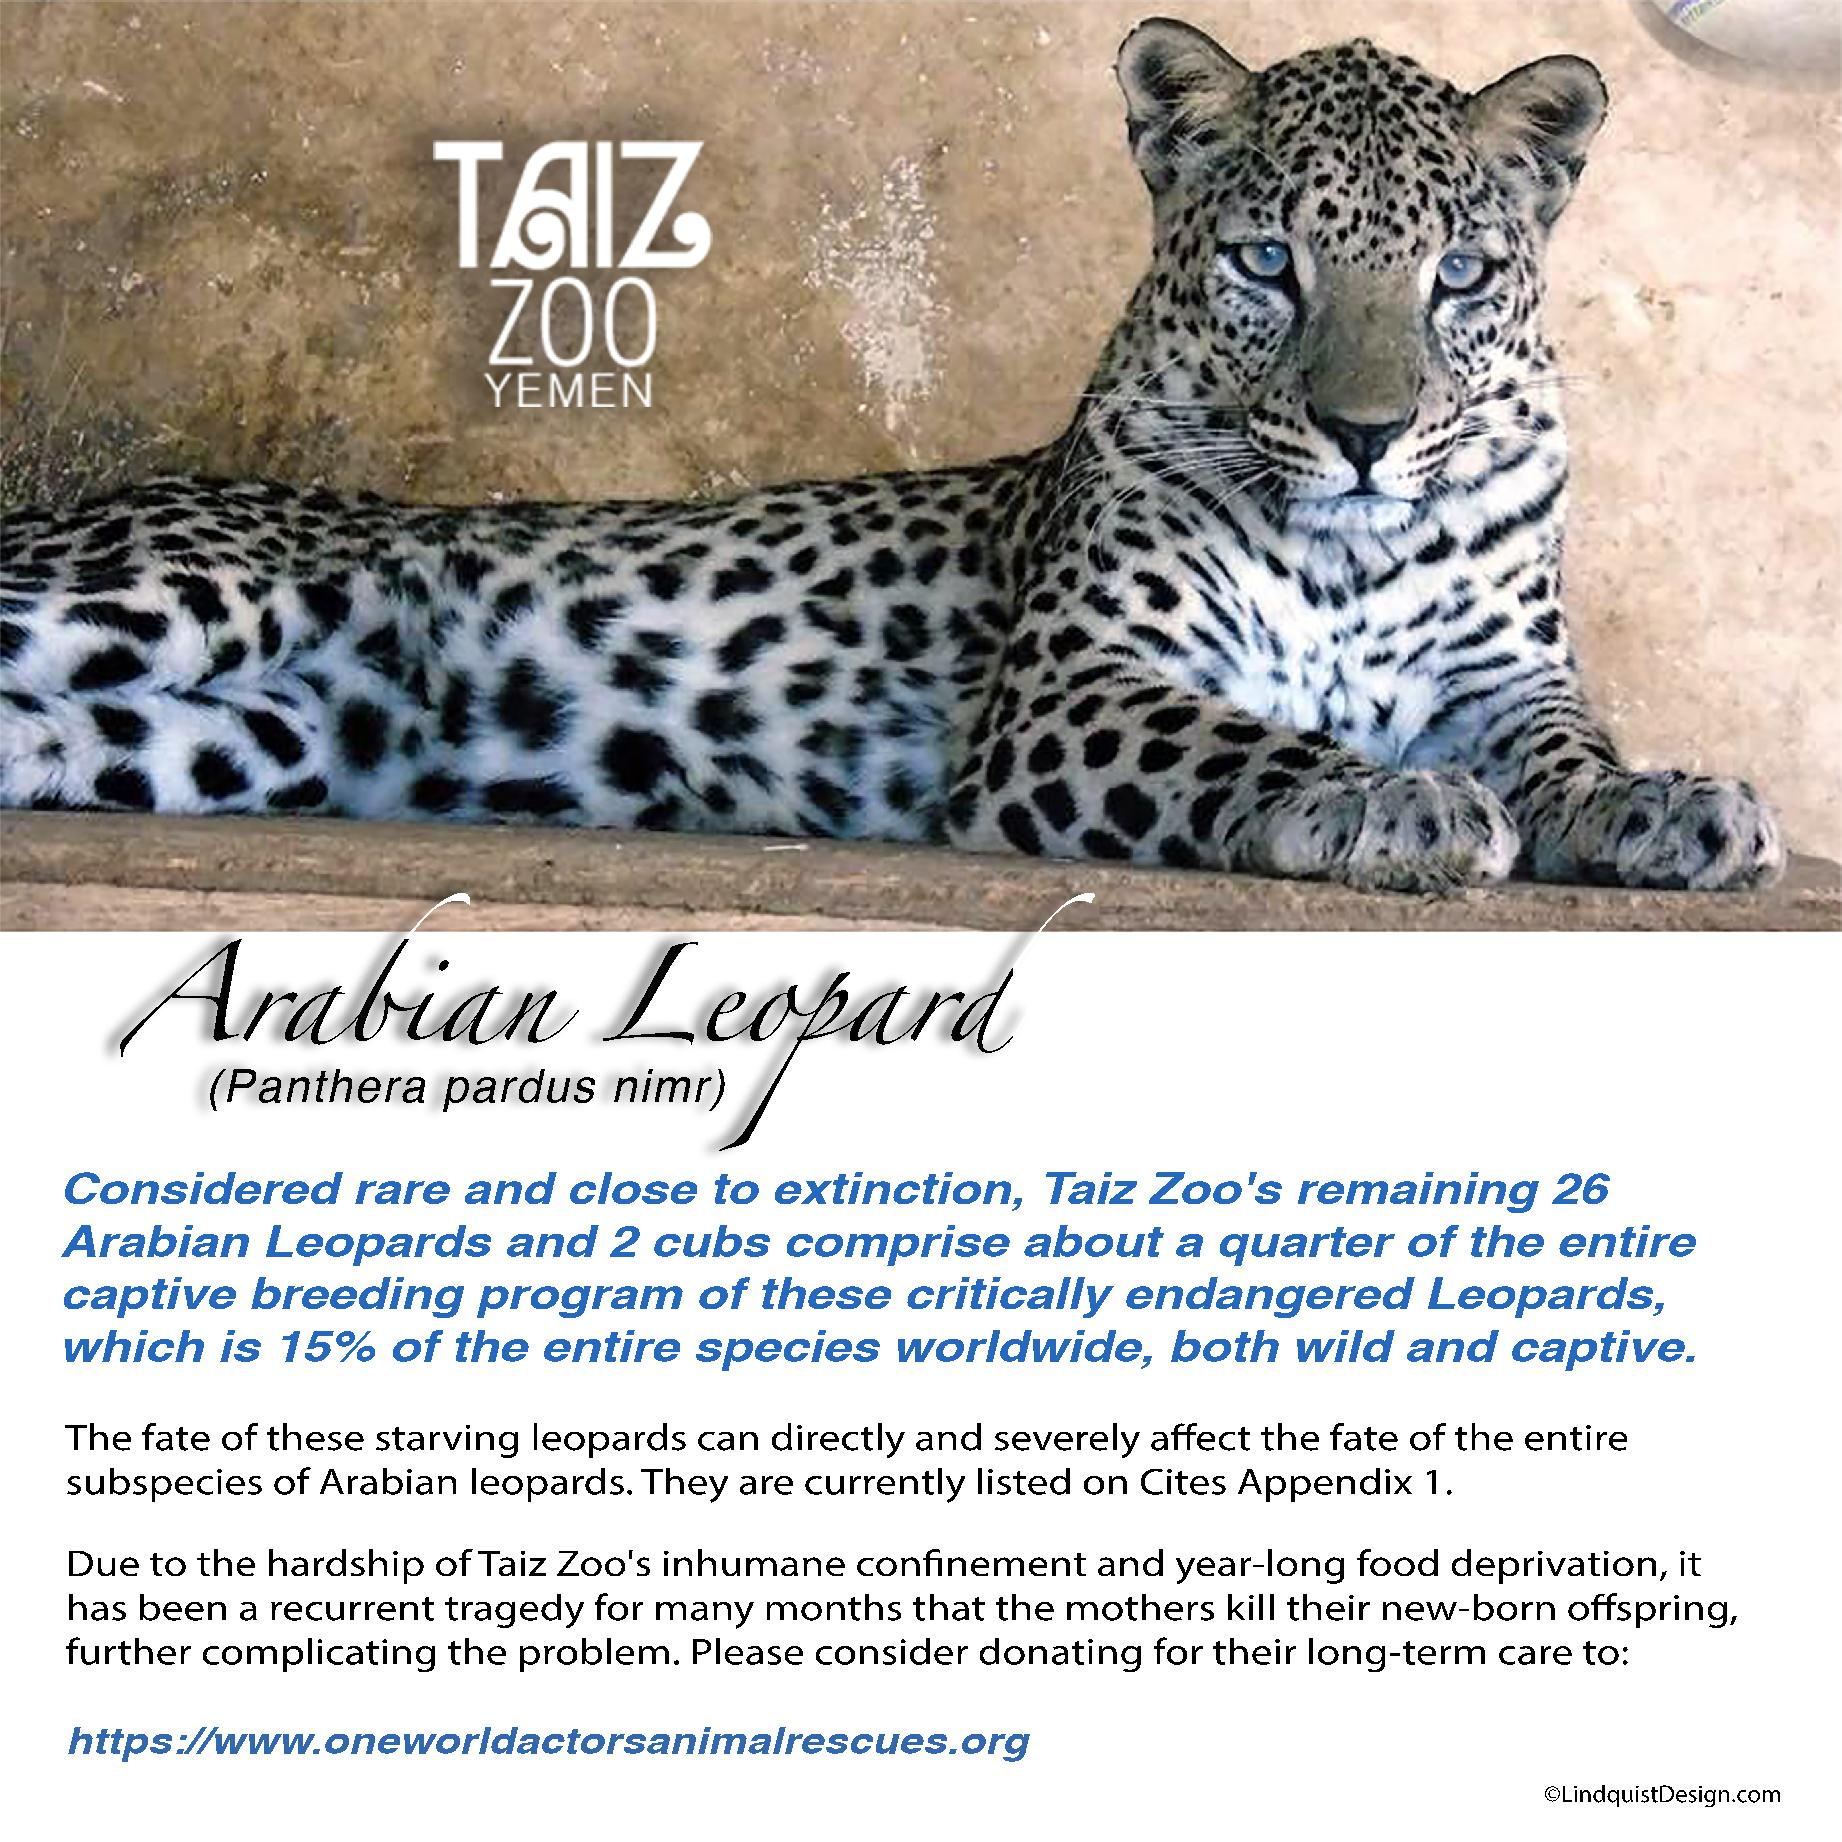 Arabian Leopard correct spelling Taiz Zoo flyer OWAp-AR with website.jpg